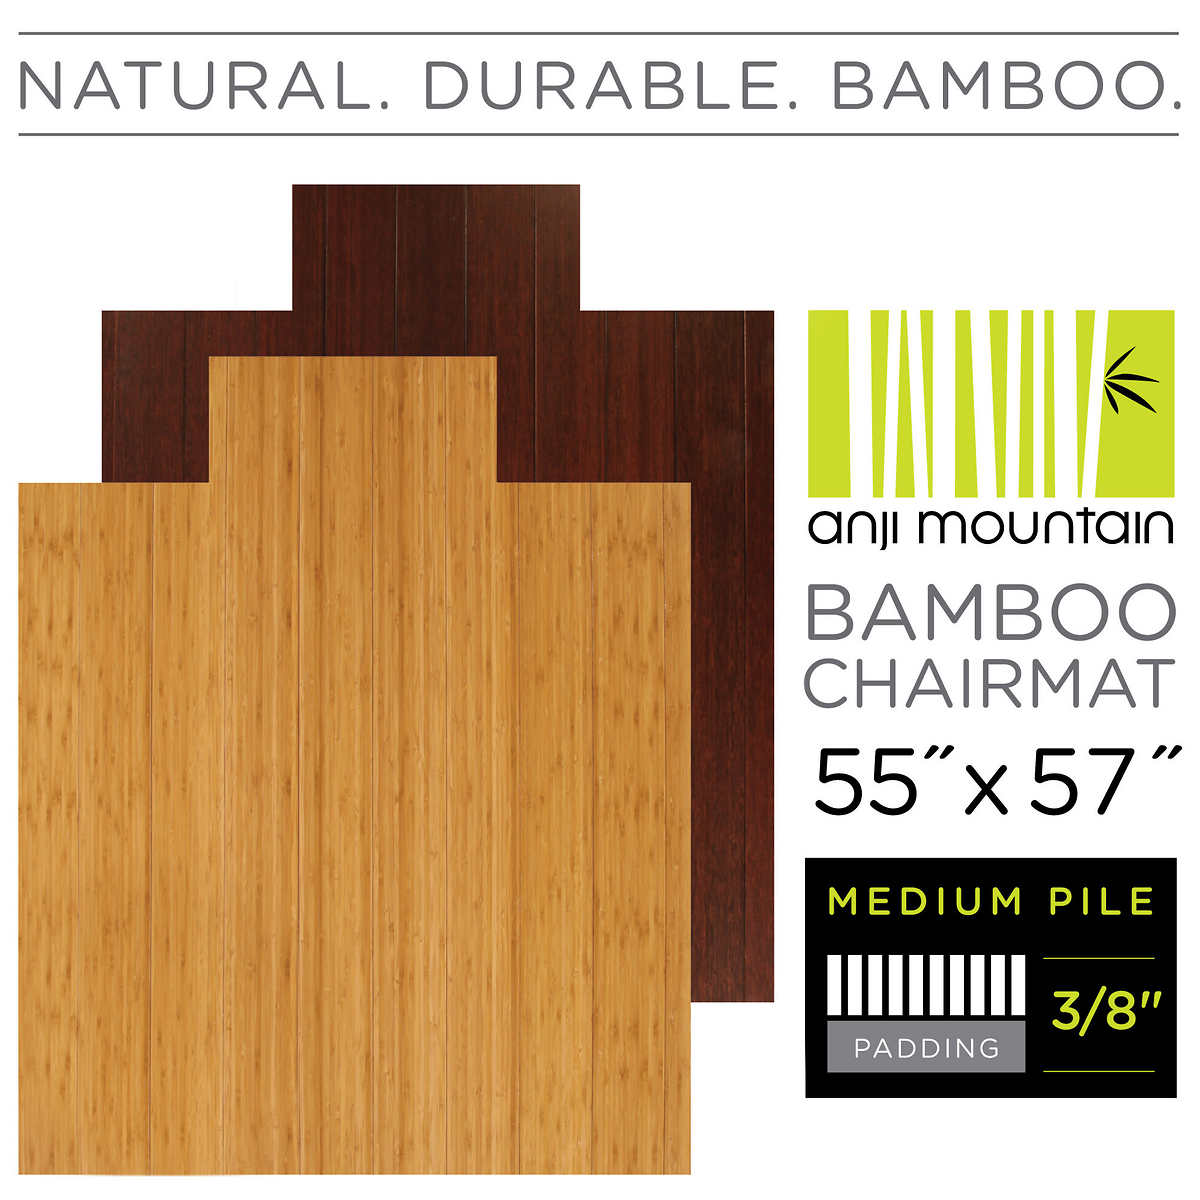 Hardwood Floor Chair Mat office chair mat enlarge Anji Mountain Bamboo Chair Mat Medium Pilehard Floor 55 X 57